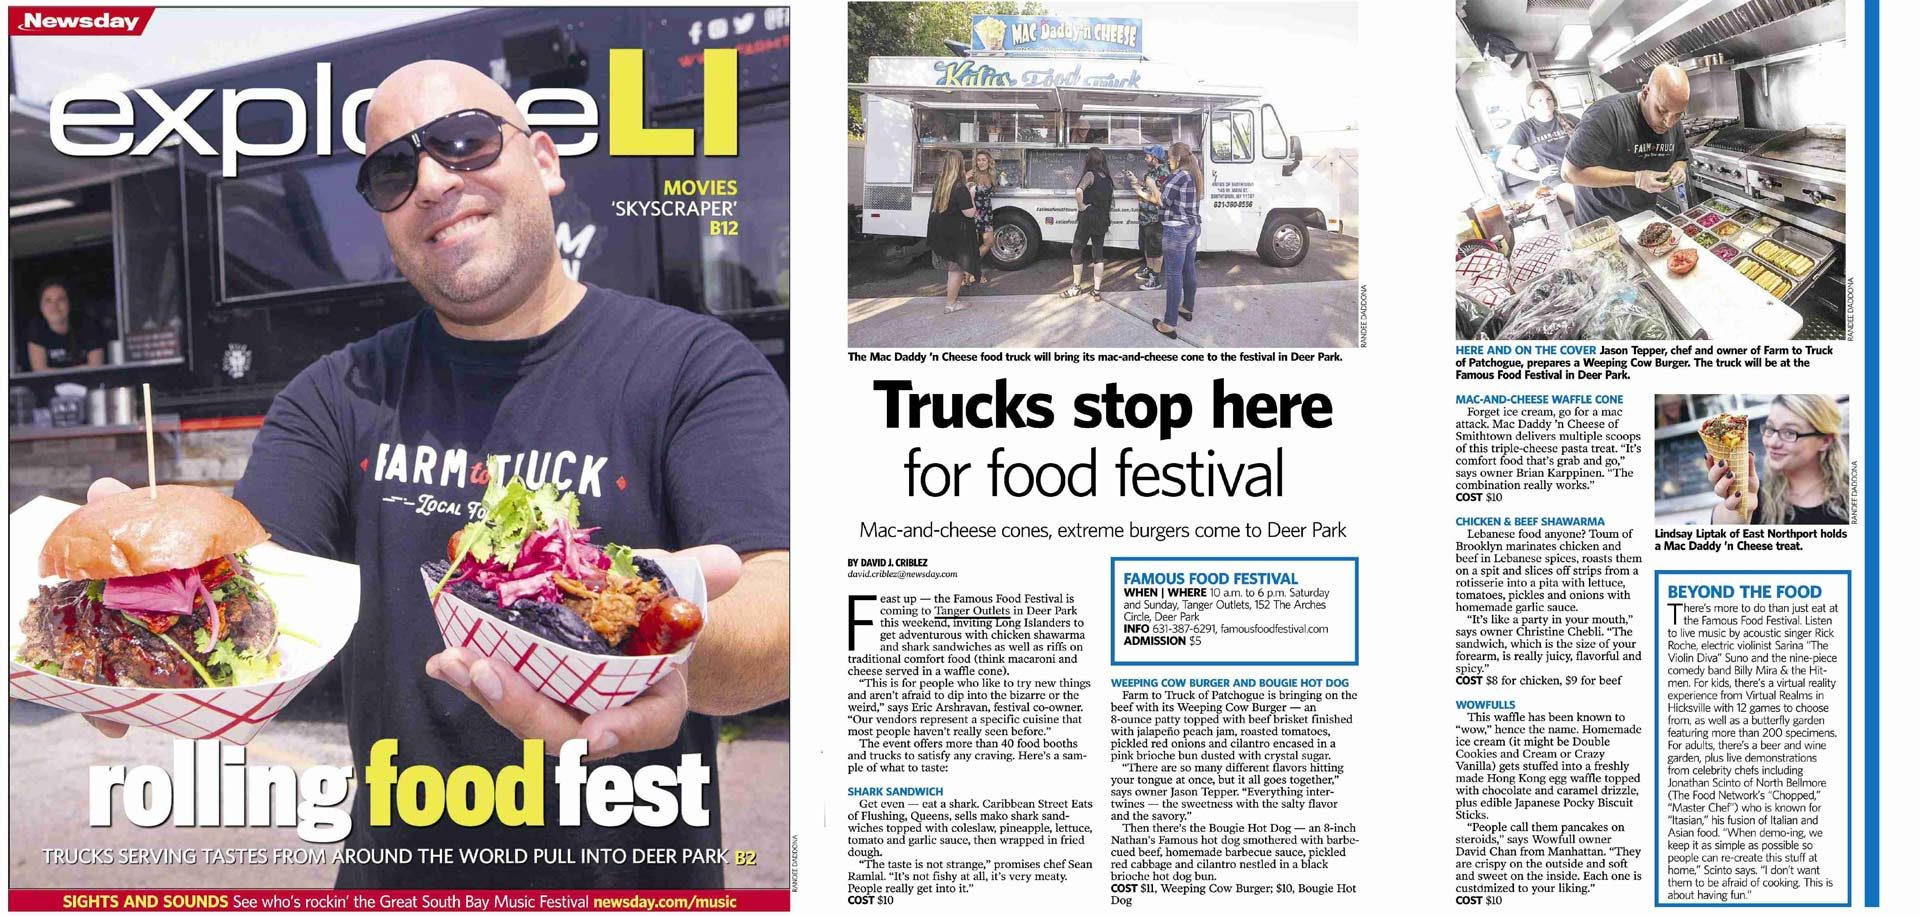 Famous Food Festival Featured in Newsday Cover